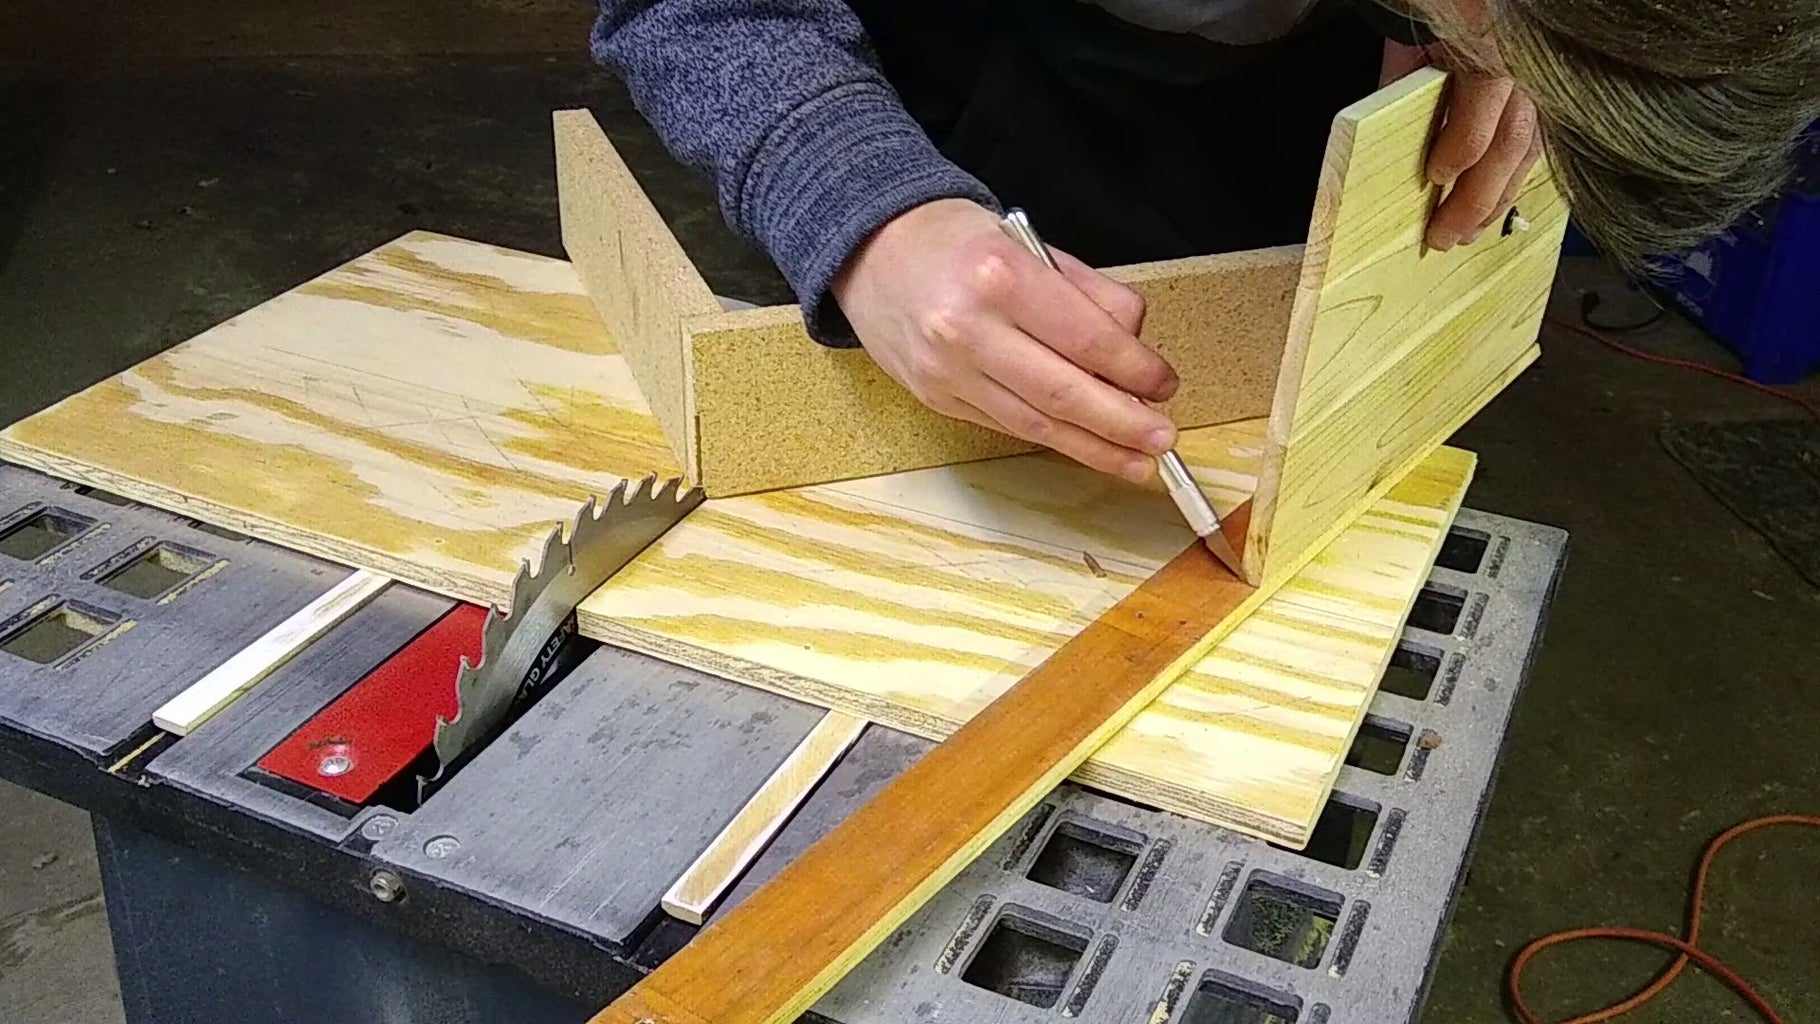 Cutting the 45-degree Angles